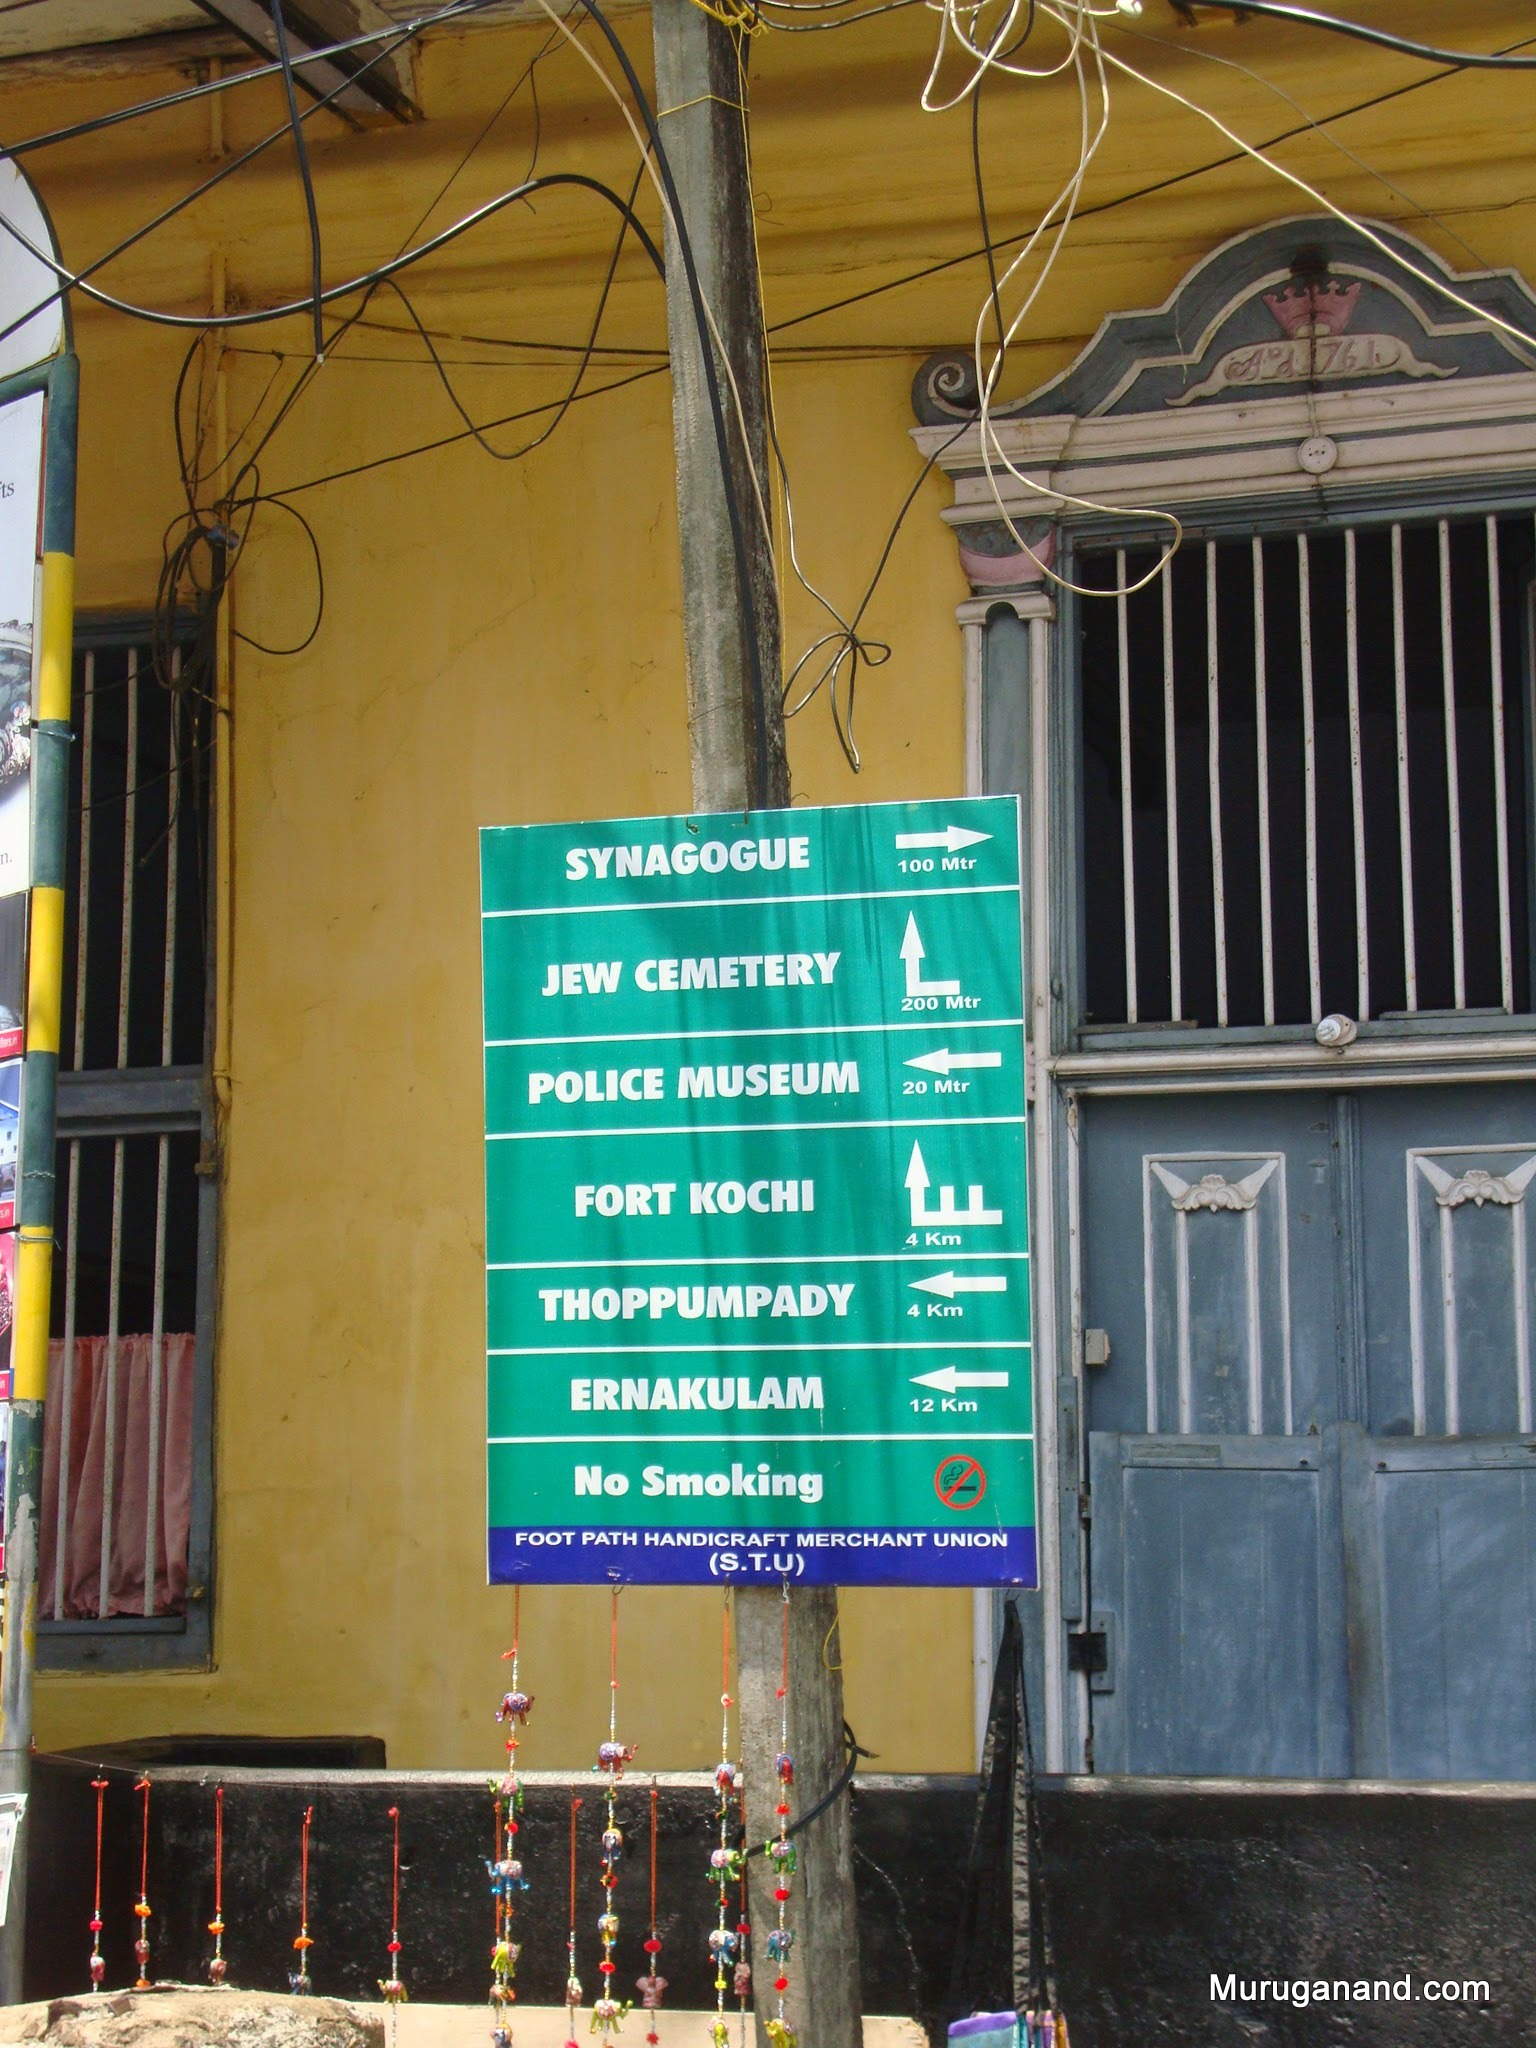 We are in Fort Cochi- popular tourist area